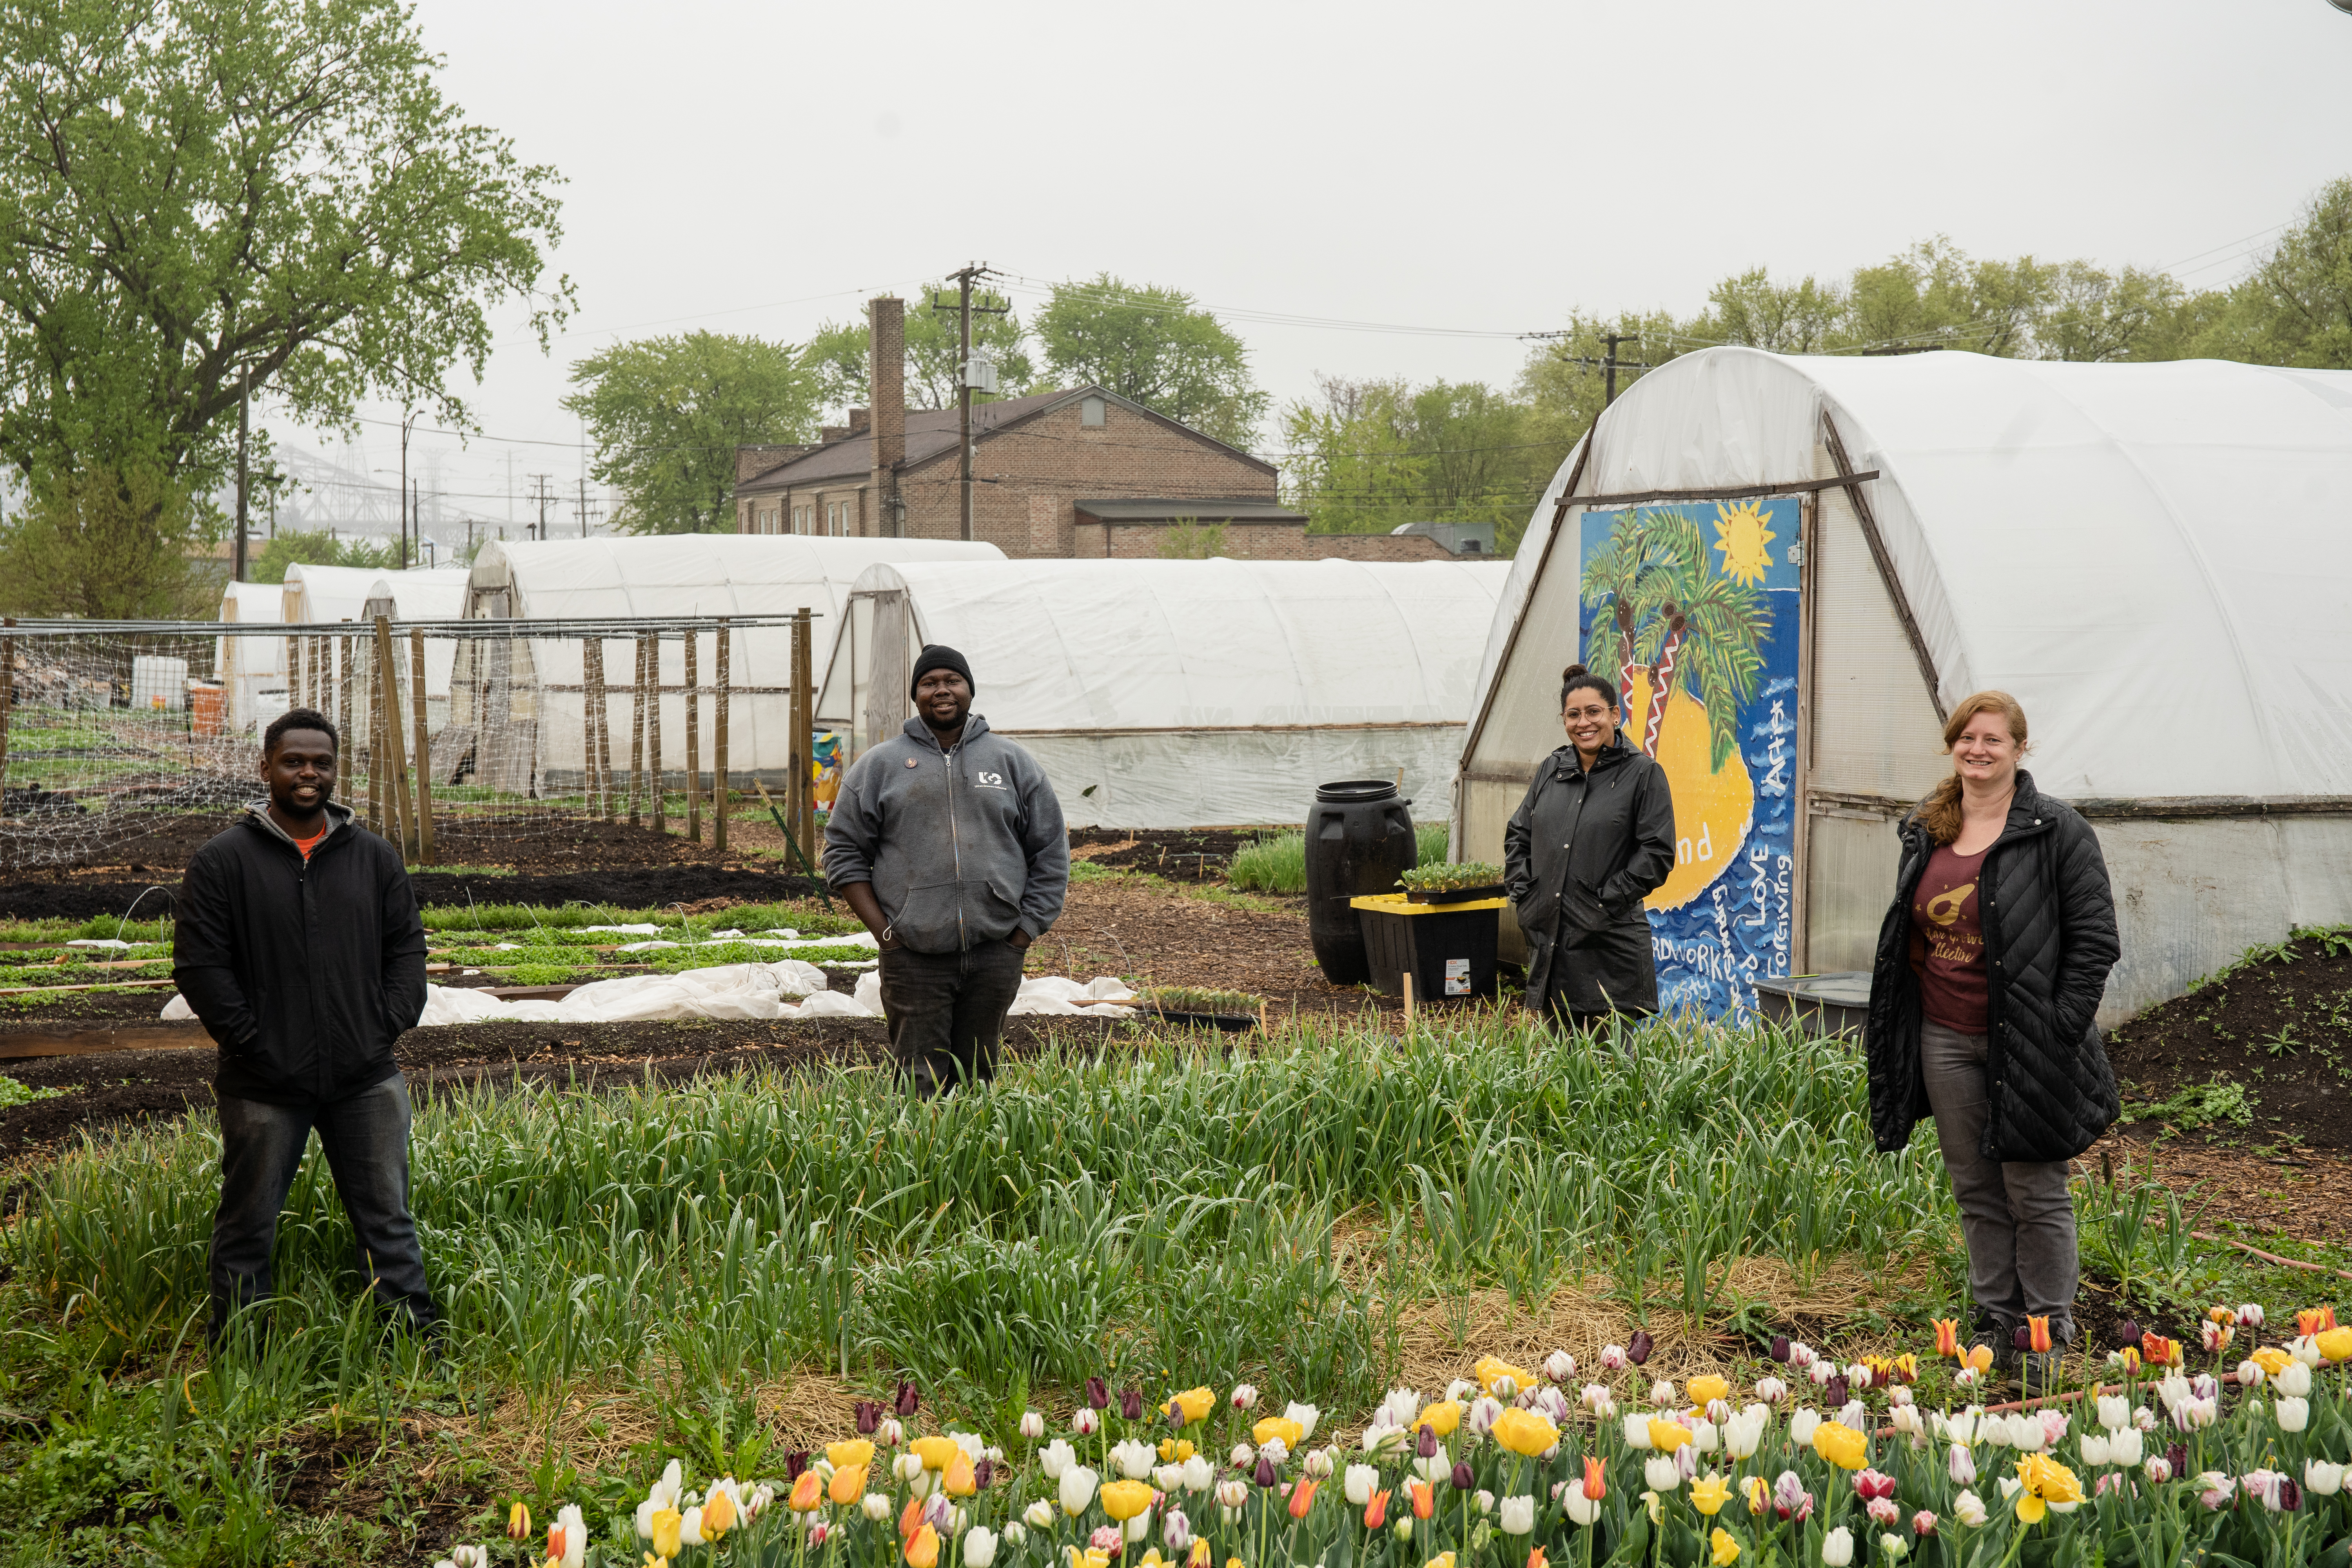 Marshall Mitchell (from left), Malcolm Evans, Siobhan Beal and Laurell Sims of Urban Growers Collective, an organization that creates farms and gardens in the South and West Sides of Chicago, are photographed at their South Chicago neighborhood farm.